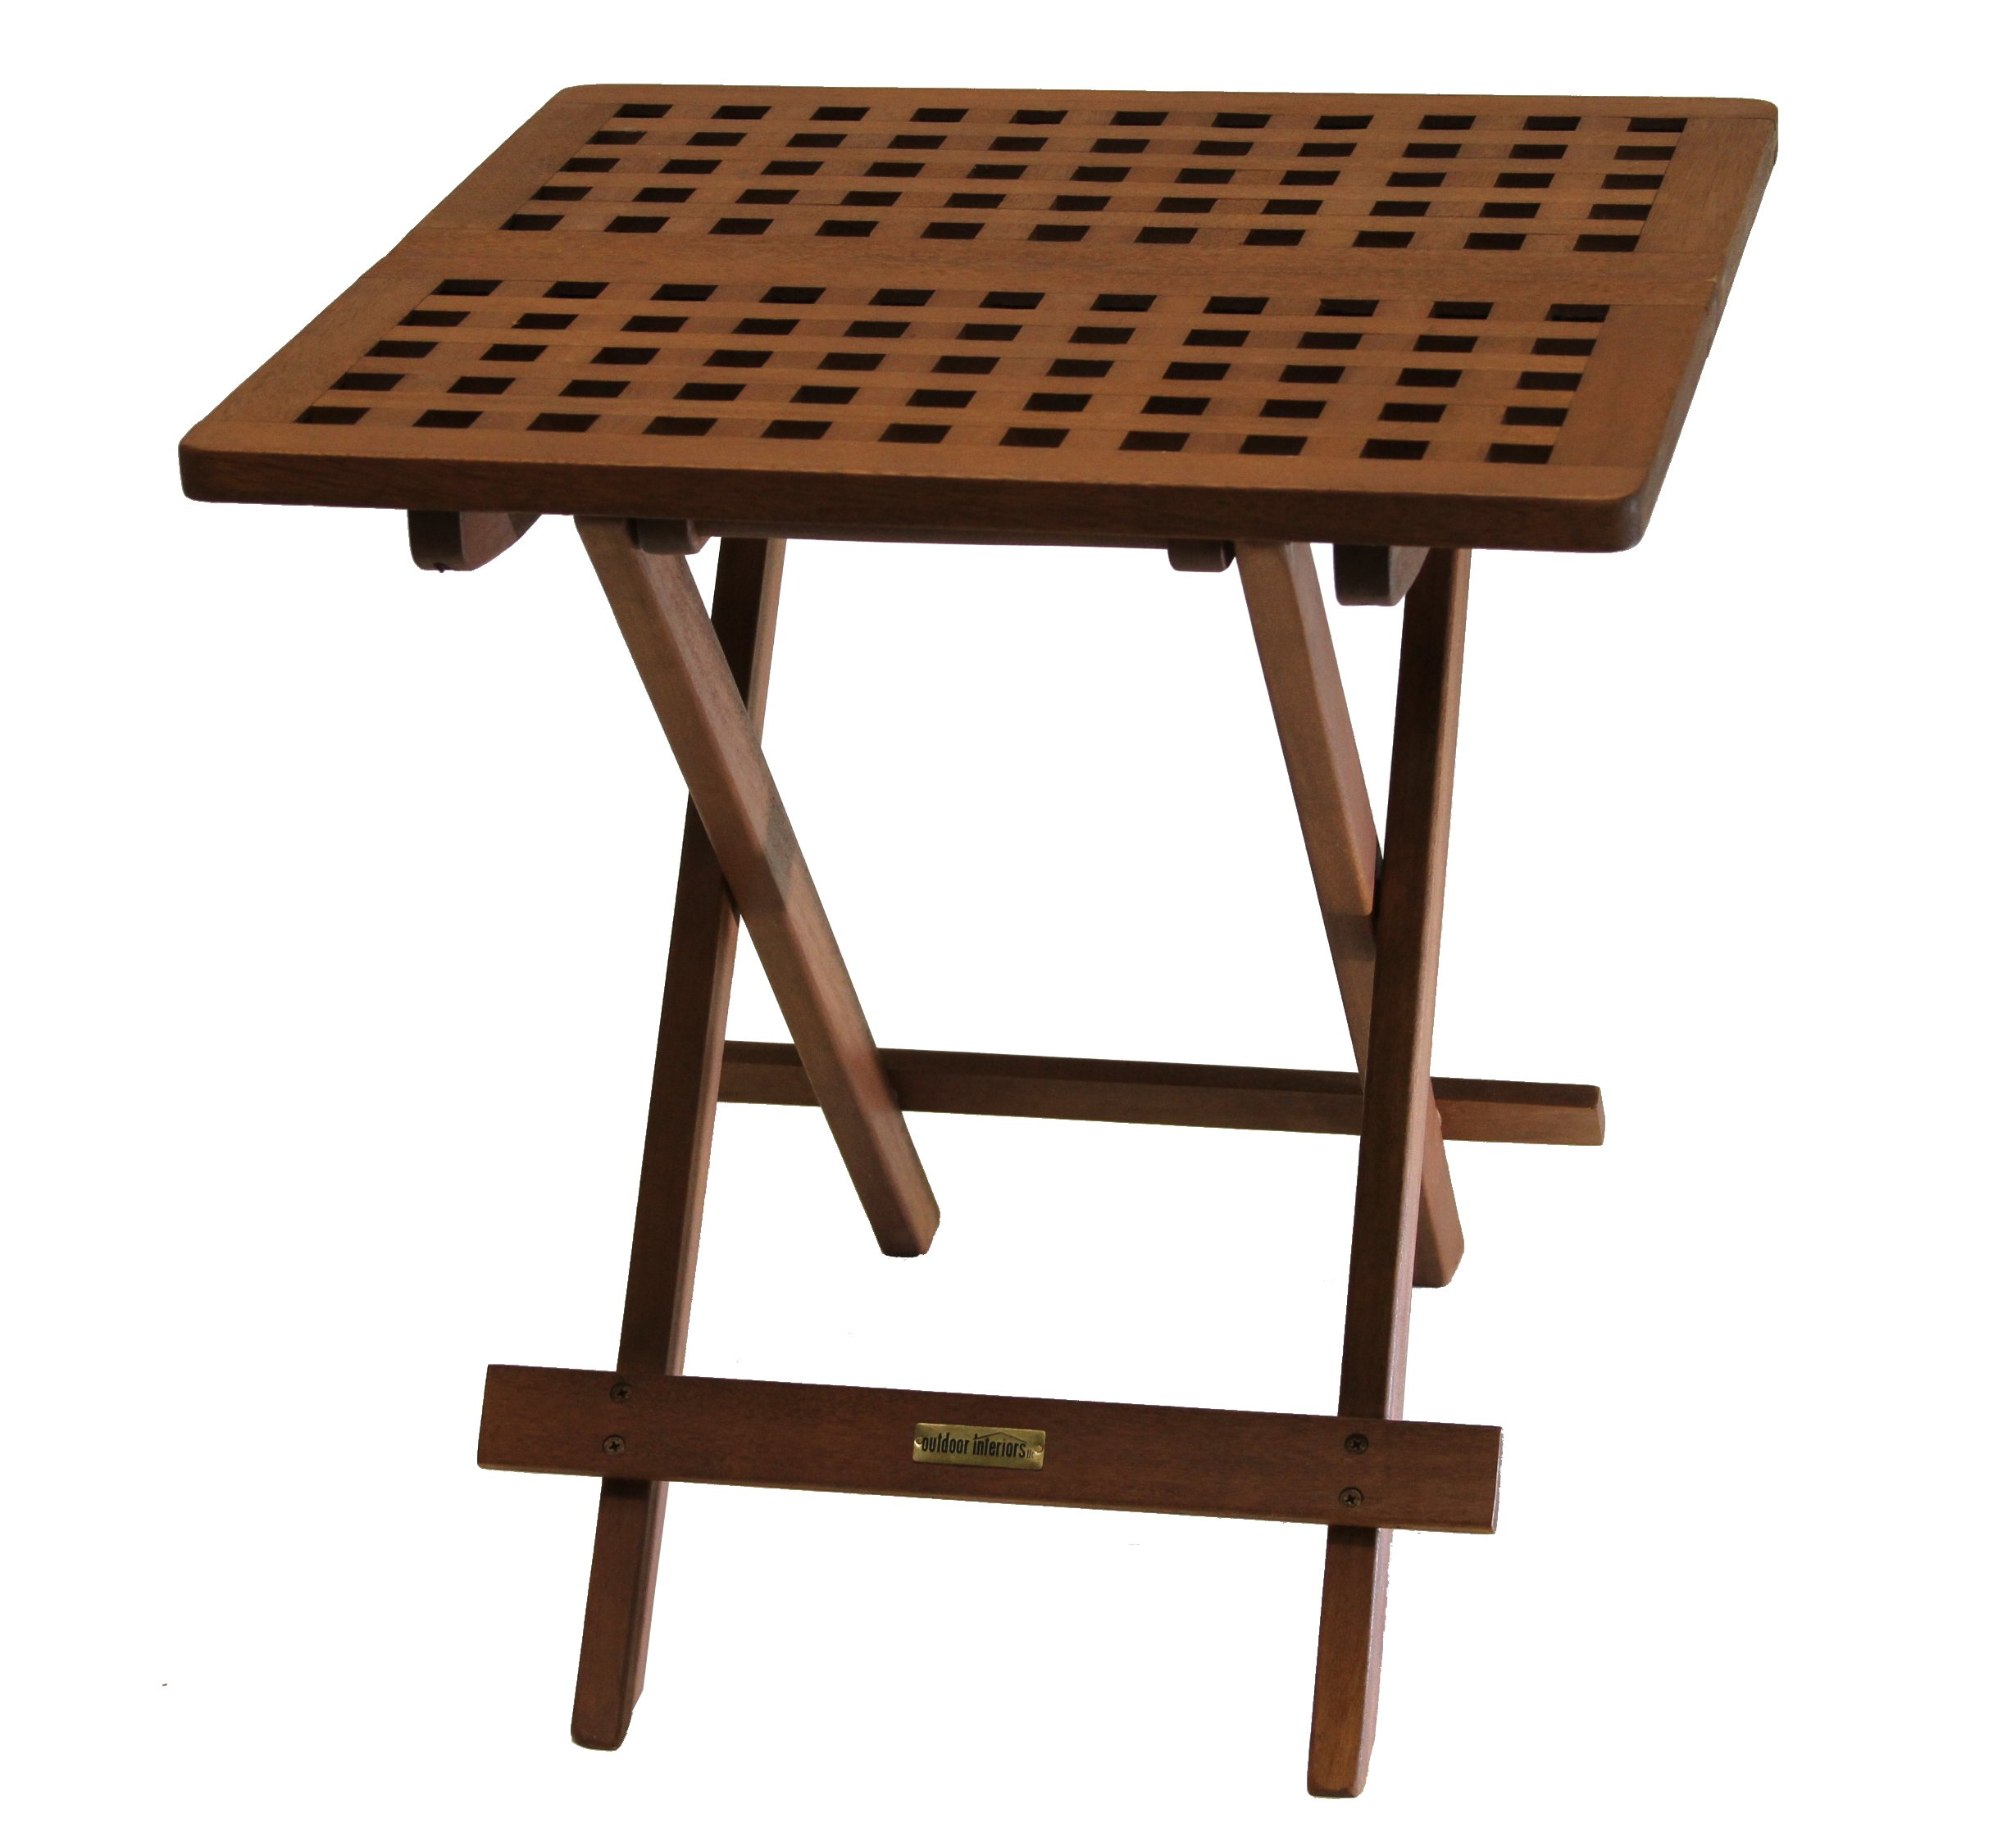 Outdoor Interiors 10070 Eucalyptus Folding Side Table, Fully Assembled by Outdoor Interiors